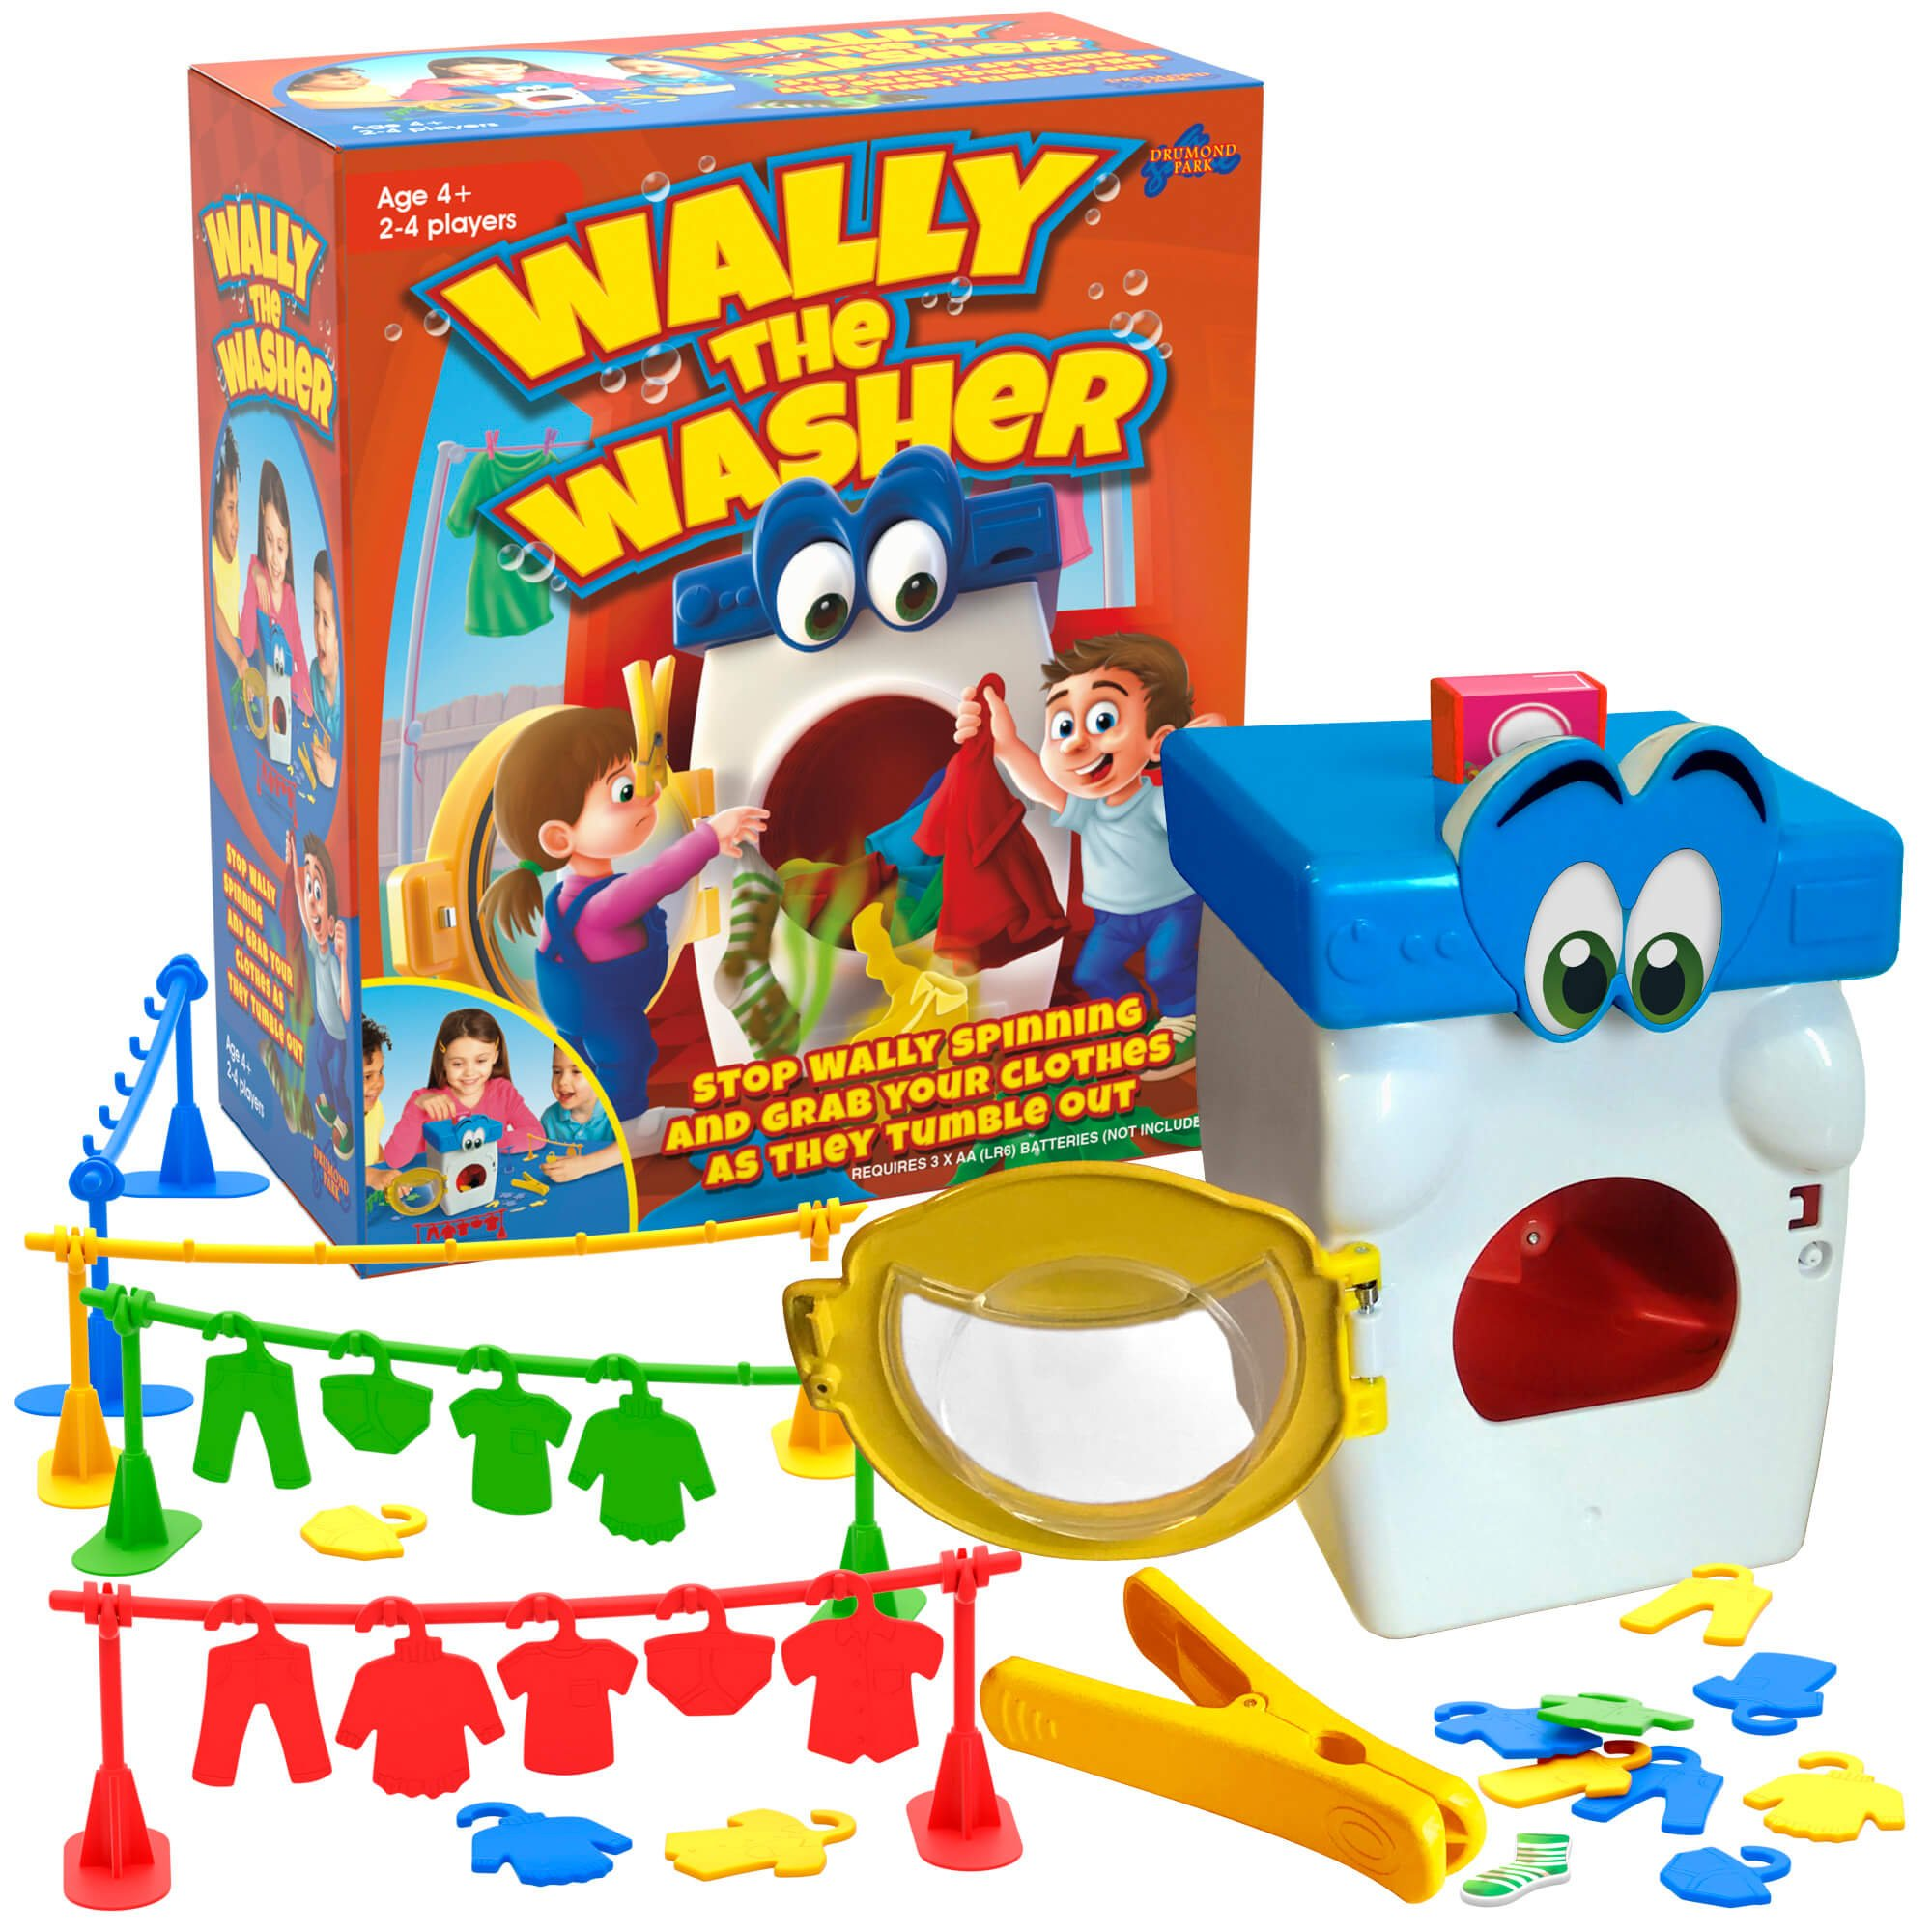 Wally The Washer Tabletop game with a toy washing machine